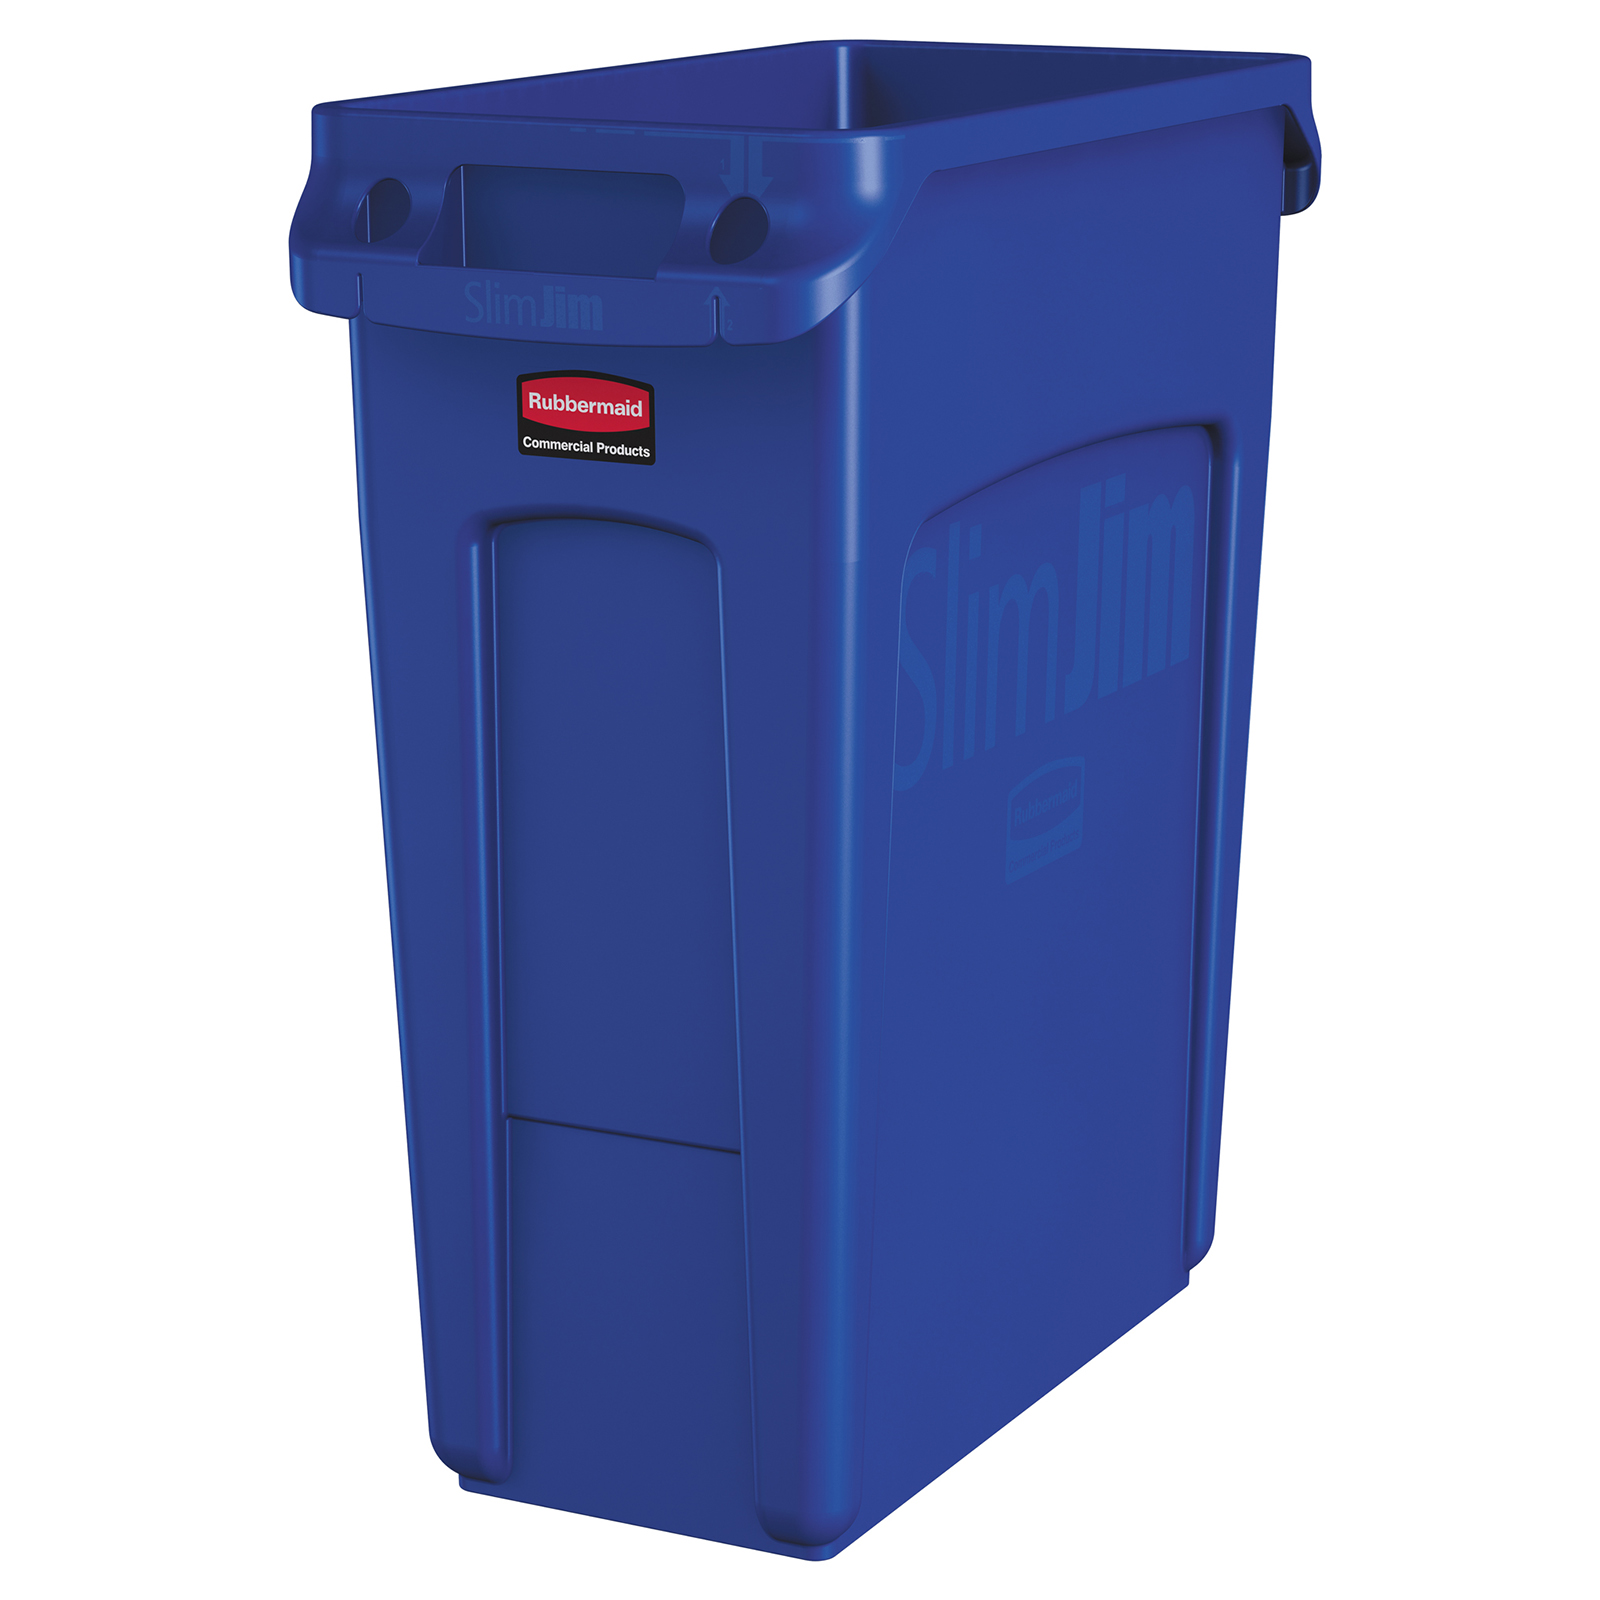 Rubbermaid Commercial Products 1971257 trash receptacle, indoor